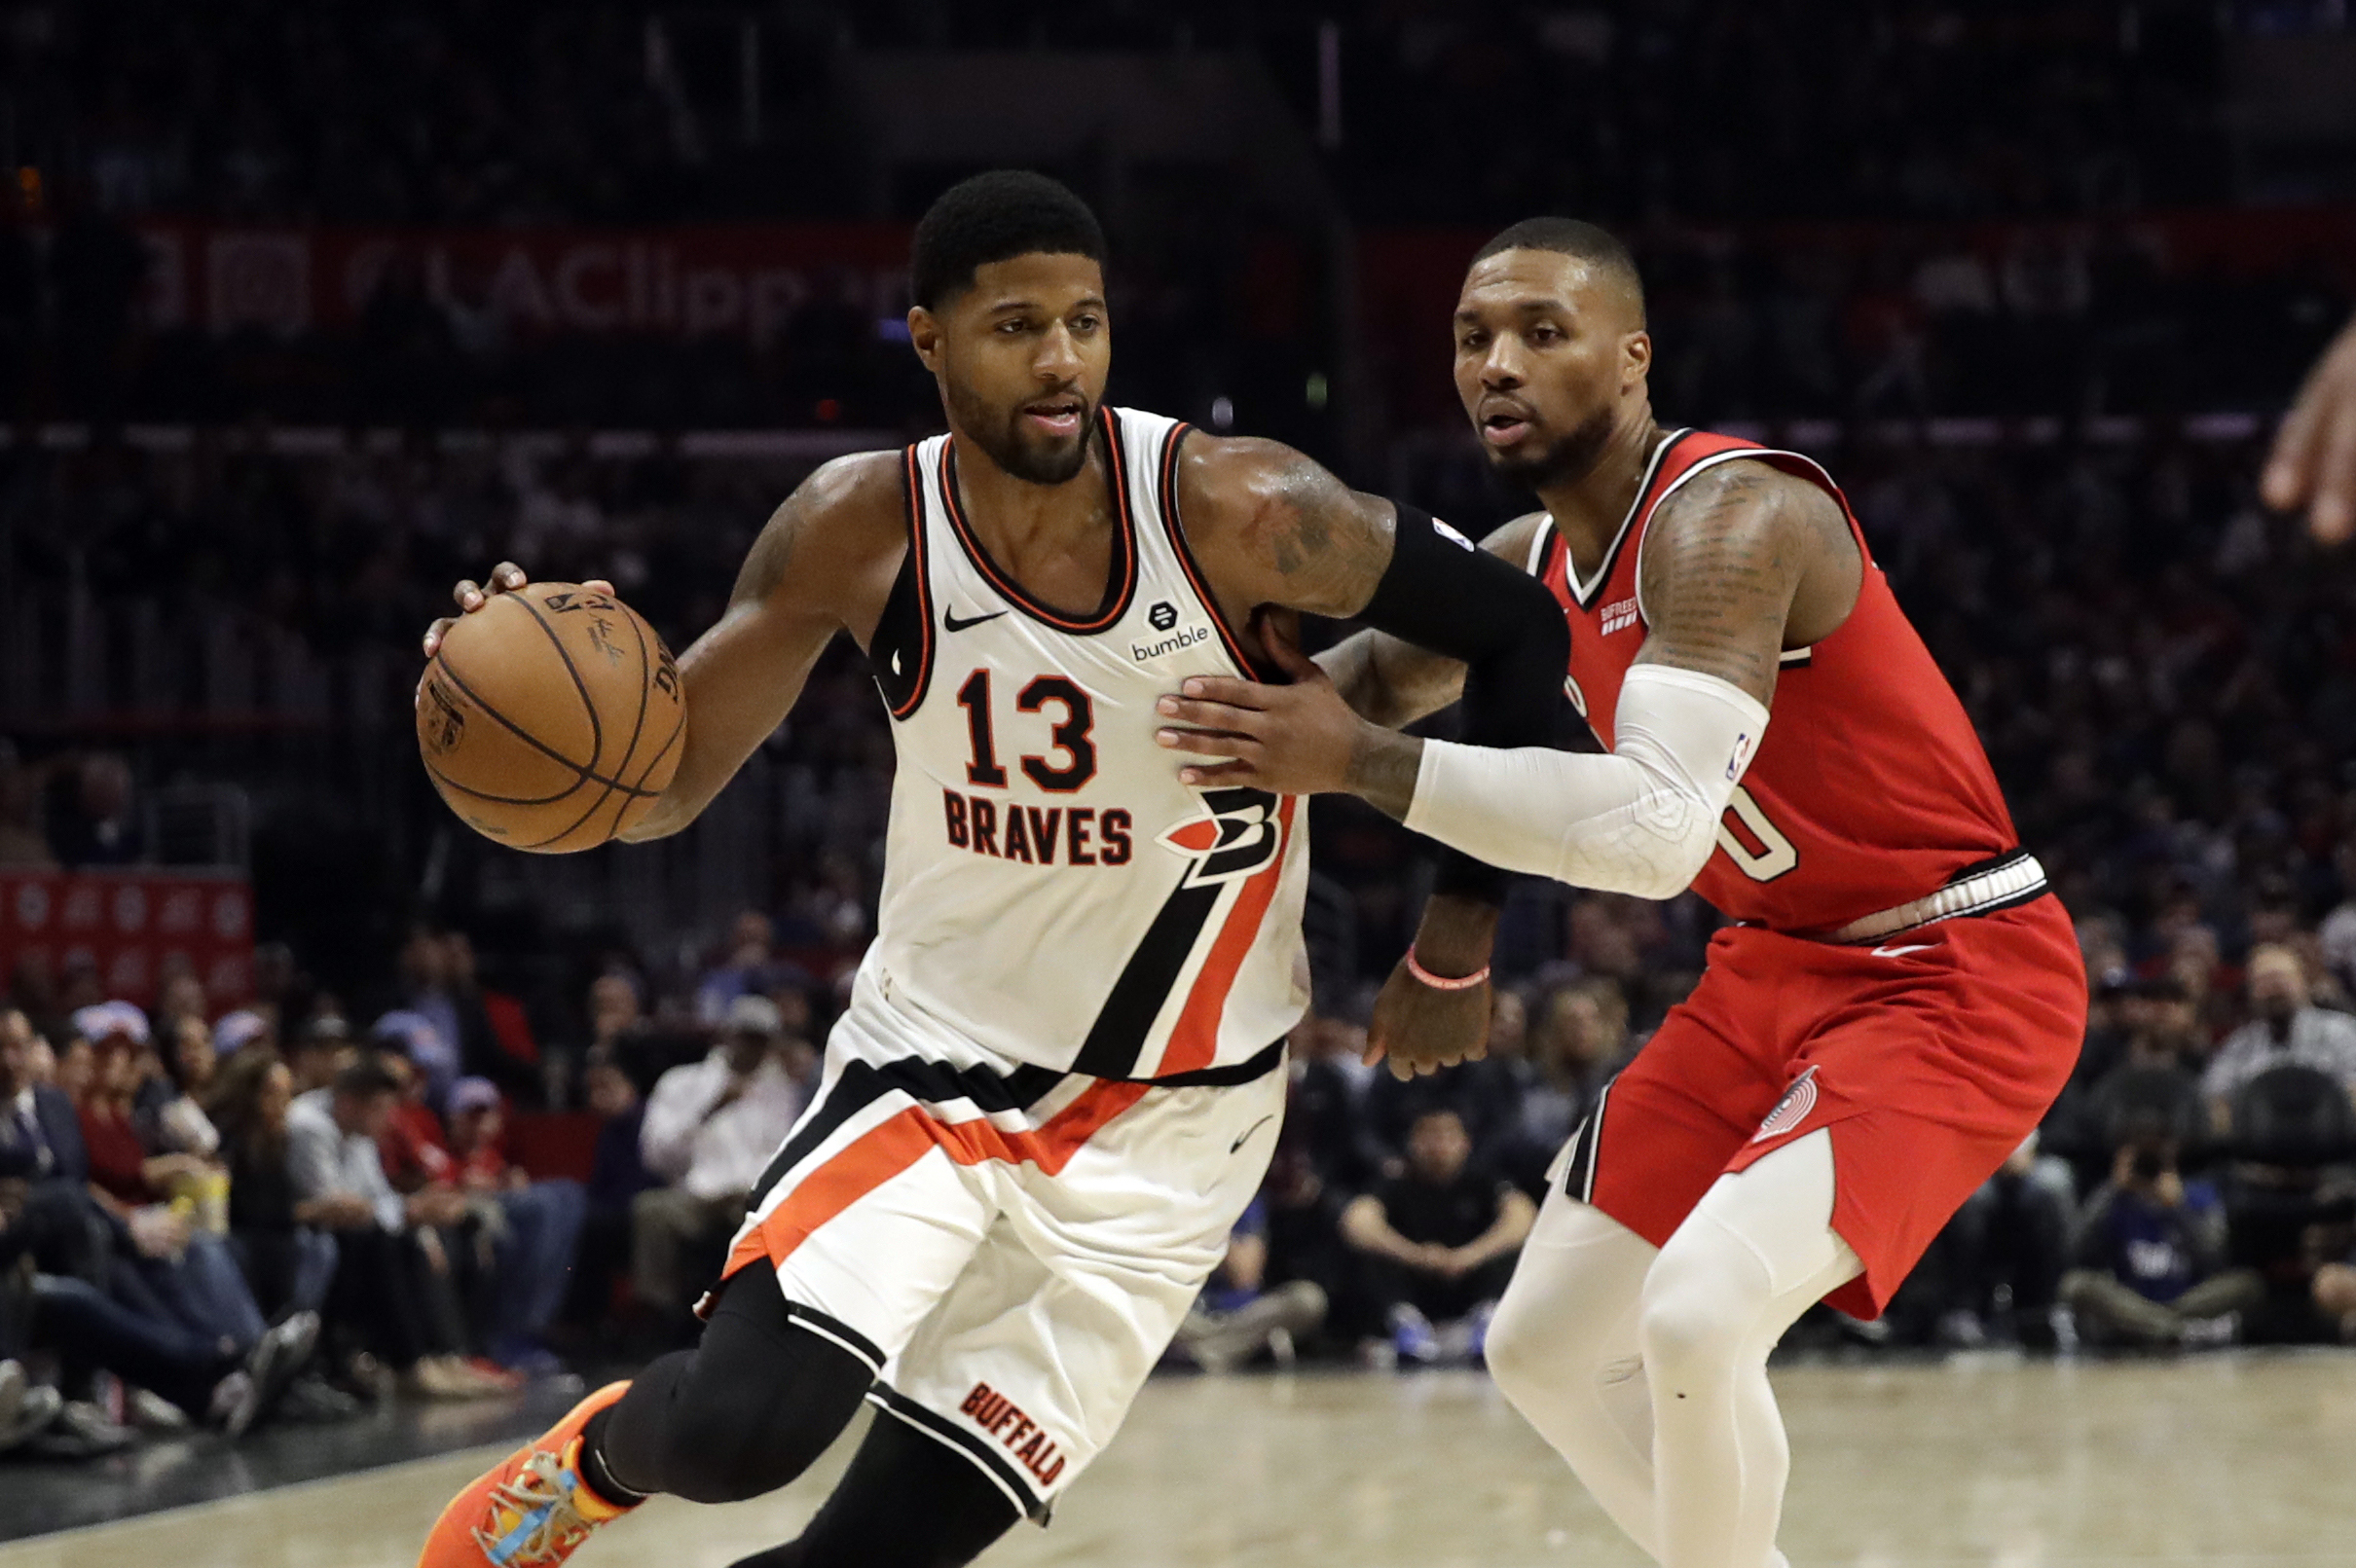 Report Paul George Reached Out To Damian Lillard To Clear Air After Online Beef Bleacher Report Latest News Videos And Highlights